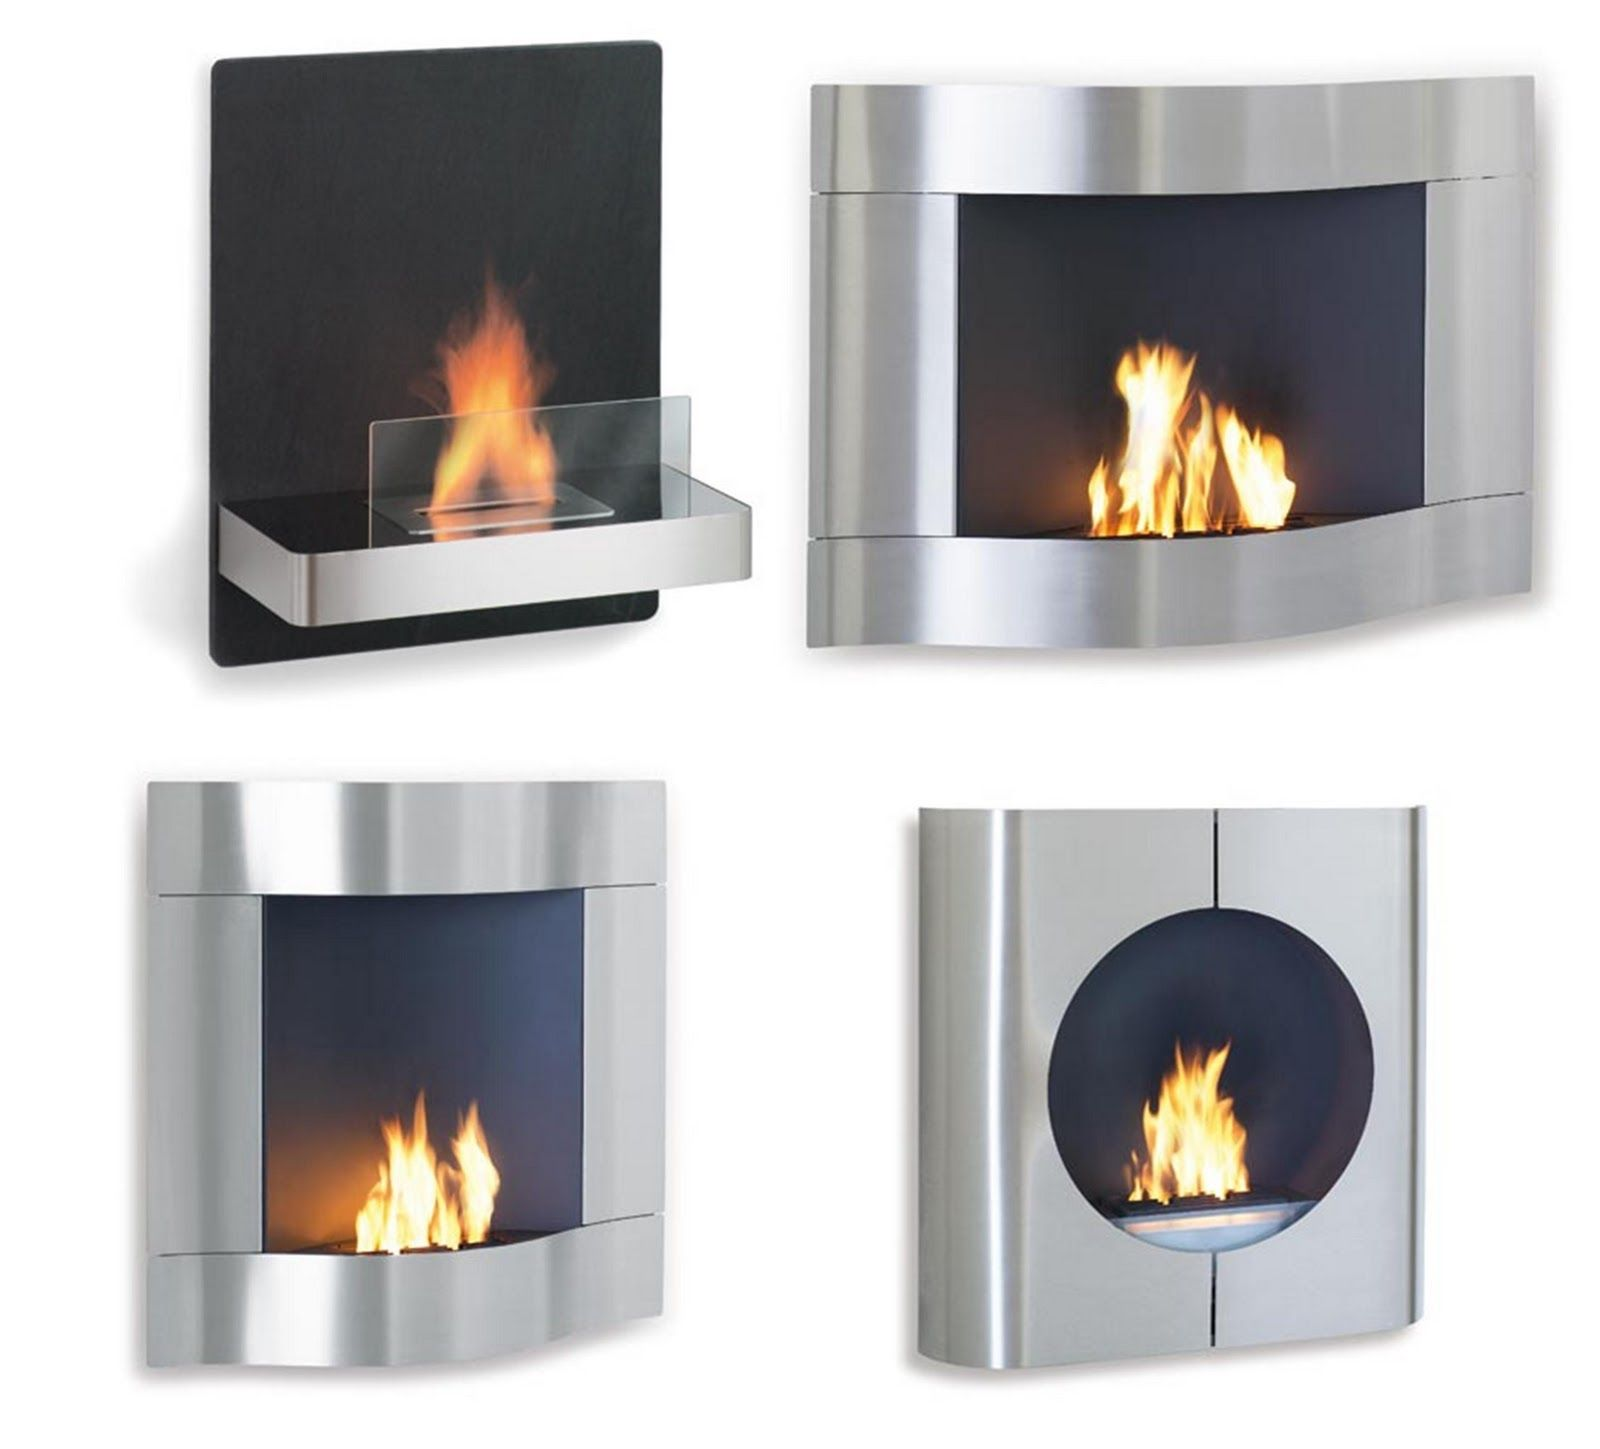 Ventless Wall Mount Gas Fireplace Time2design Ventless Fireplace Ventless Fireplace